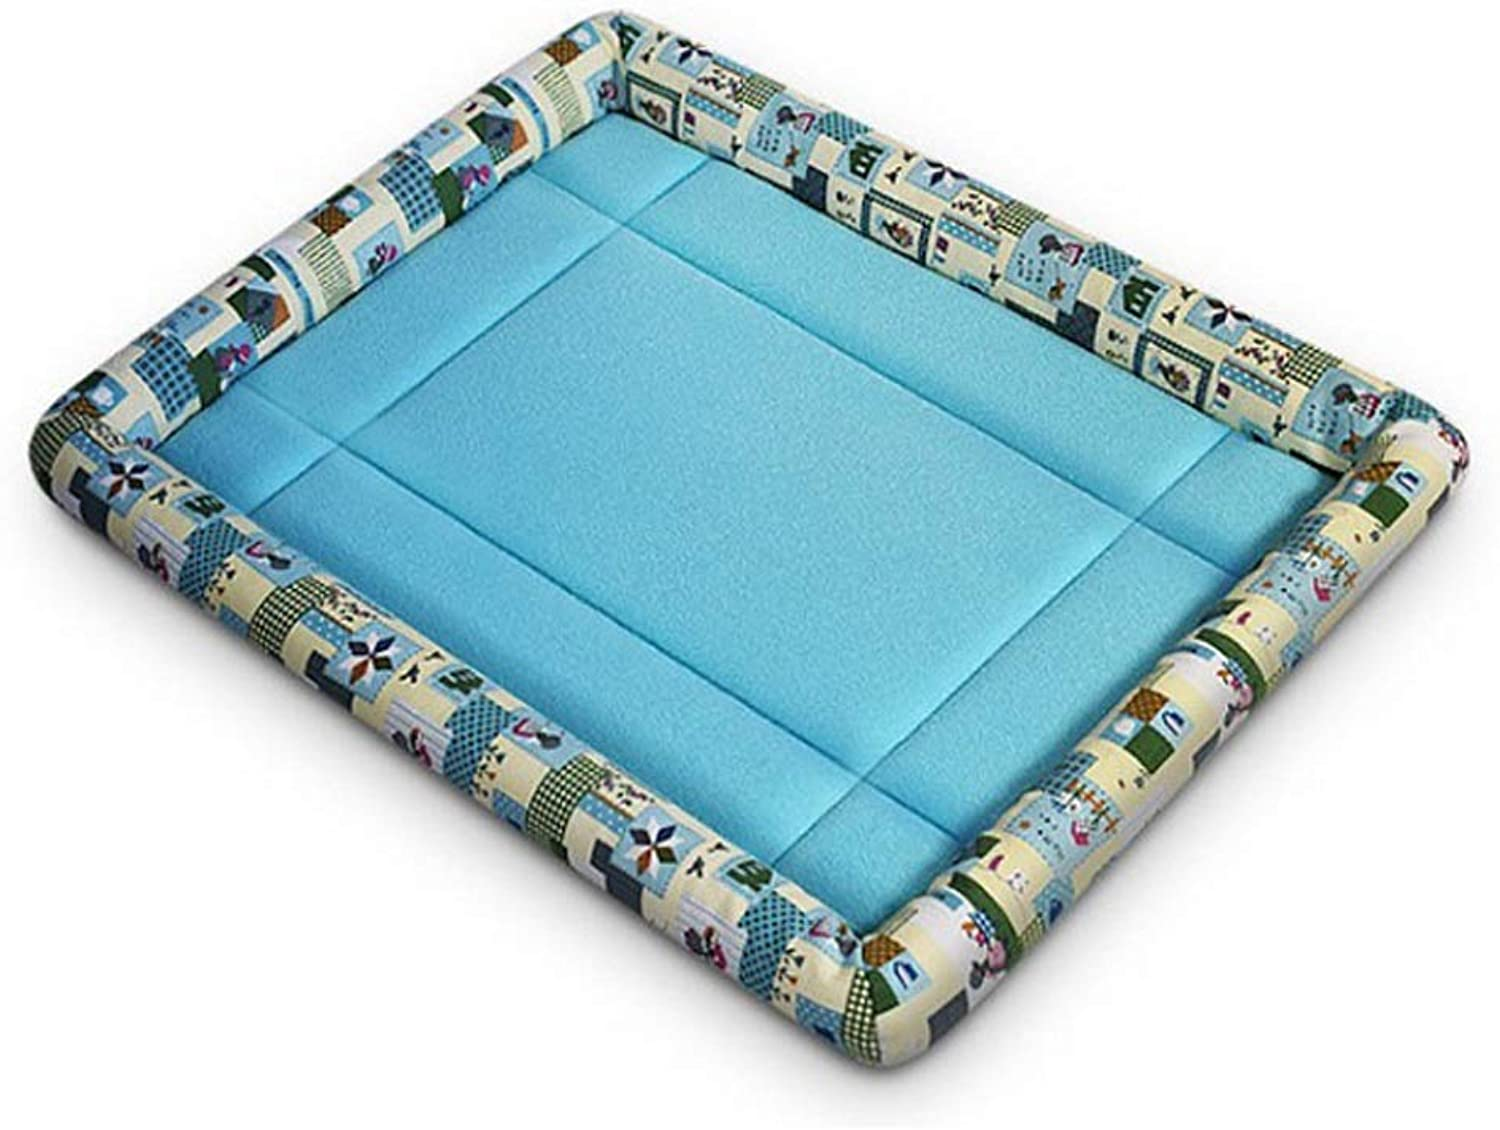 Lzrzbh Kennel Summer Cool Nest Pet Nest Detachable Wash Dogs Indoor Four Seasons Available ,Pet Cats Rest Sleeping Resting Cute House (color   Cartoon bluee, Size   M)